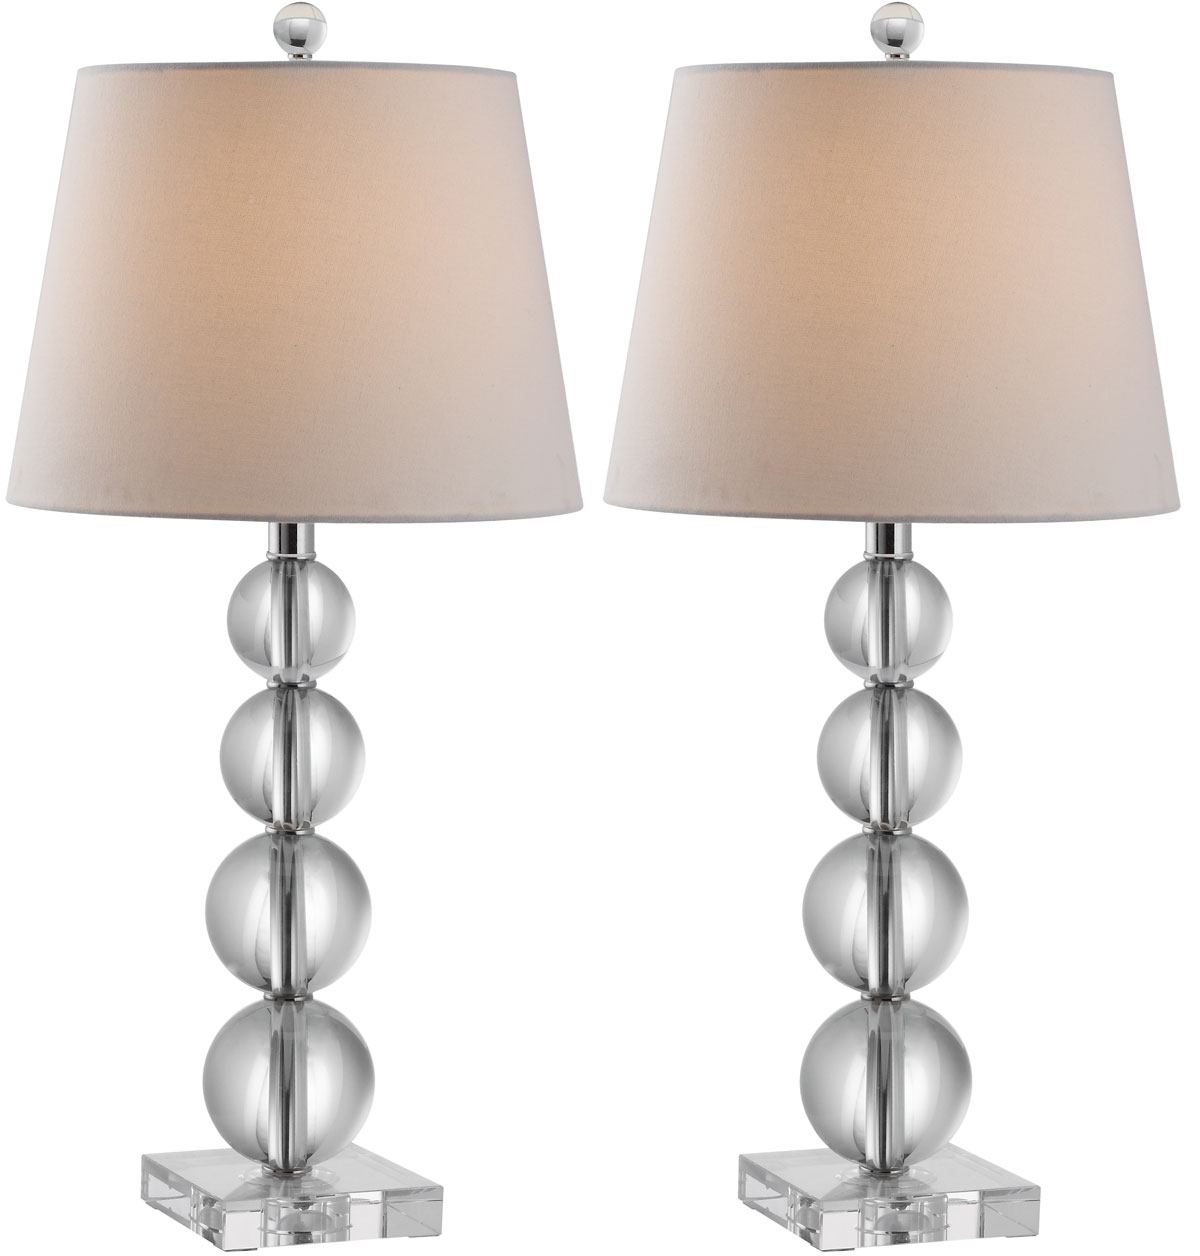 Lit4102a set2 table lamps lighting by safavieh for Images of table lamps